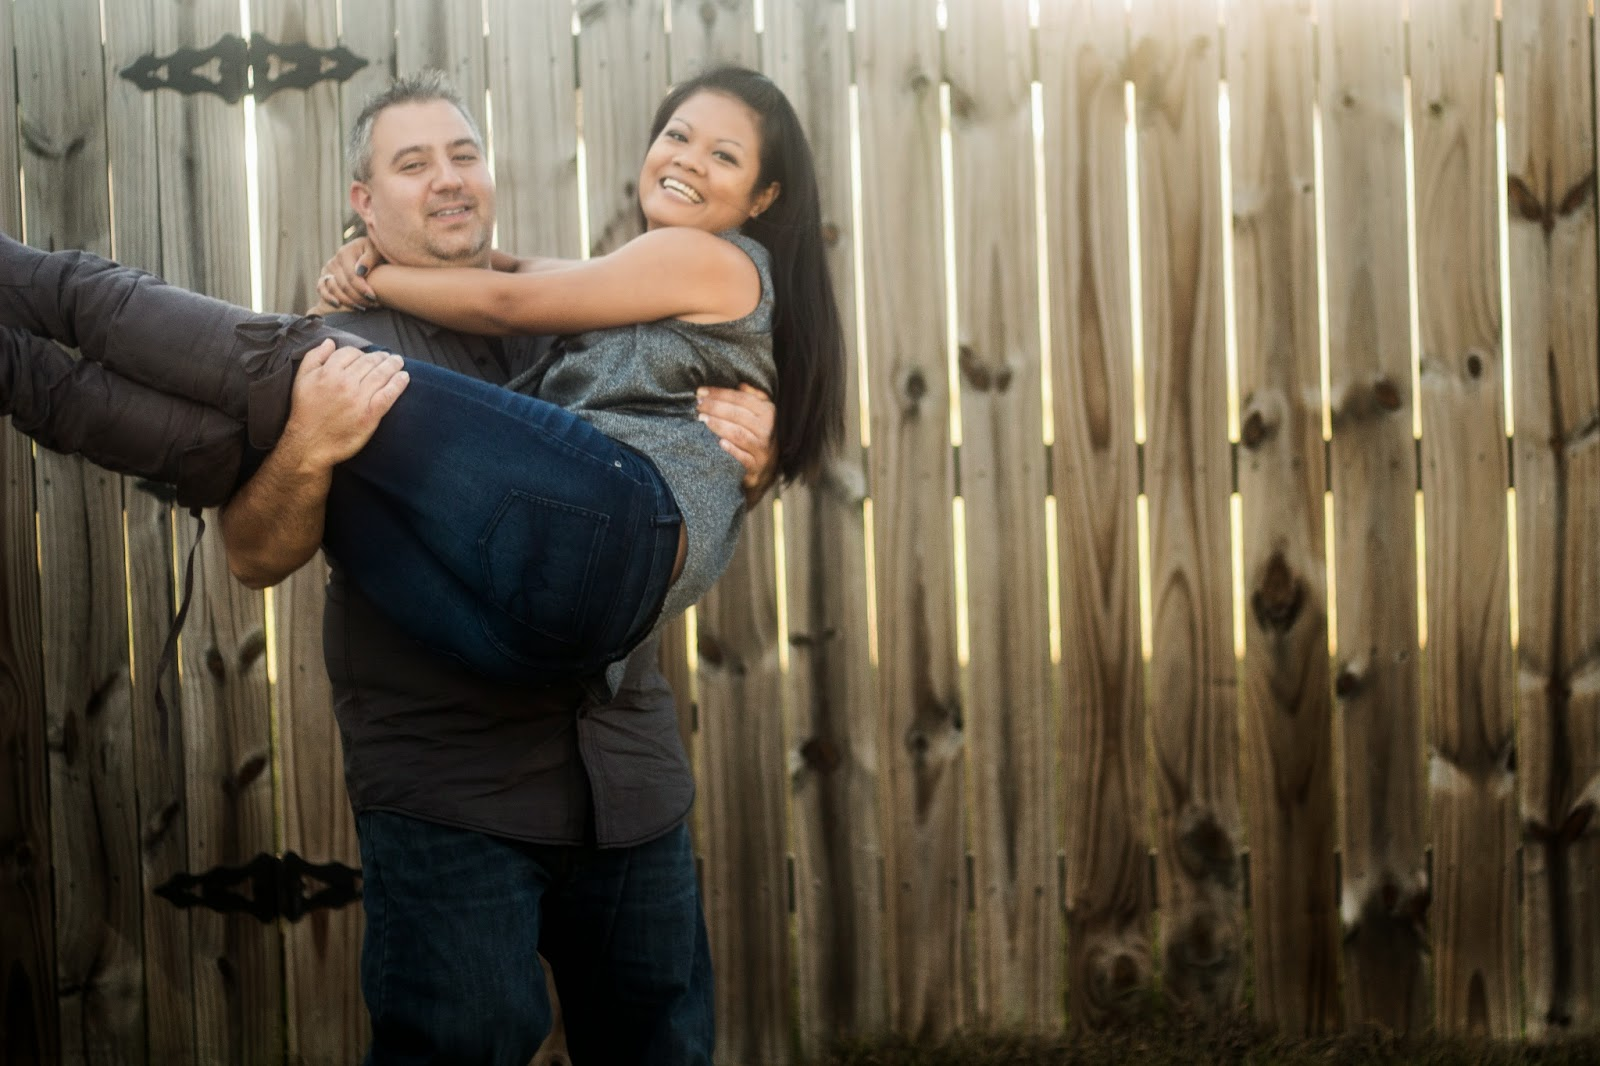 Justin Amy Our Family Engagement Session Greenville NC Photographer Bryant Tyson Photography 6